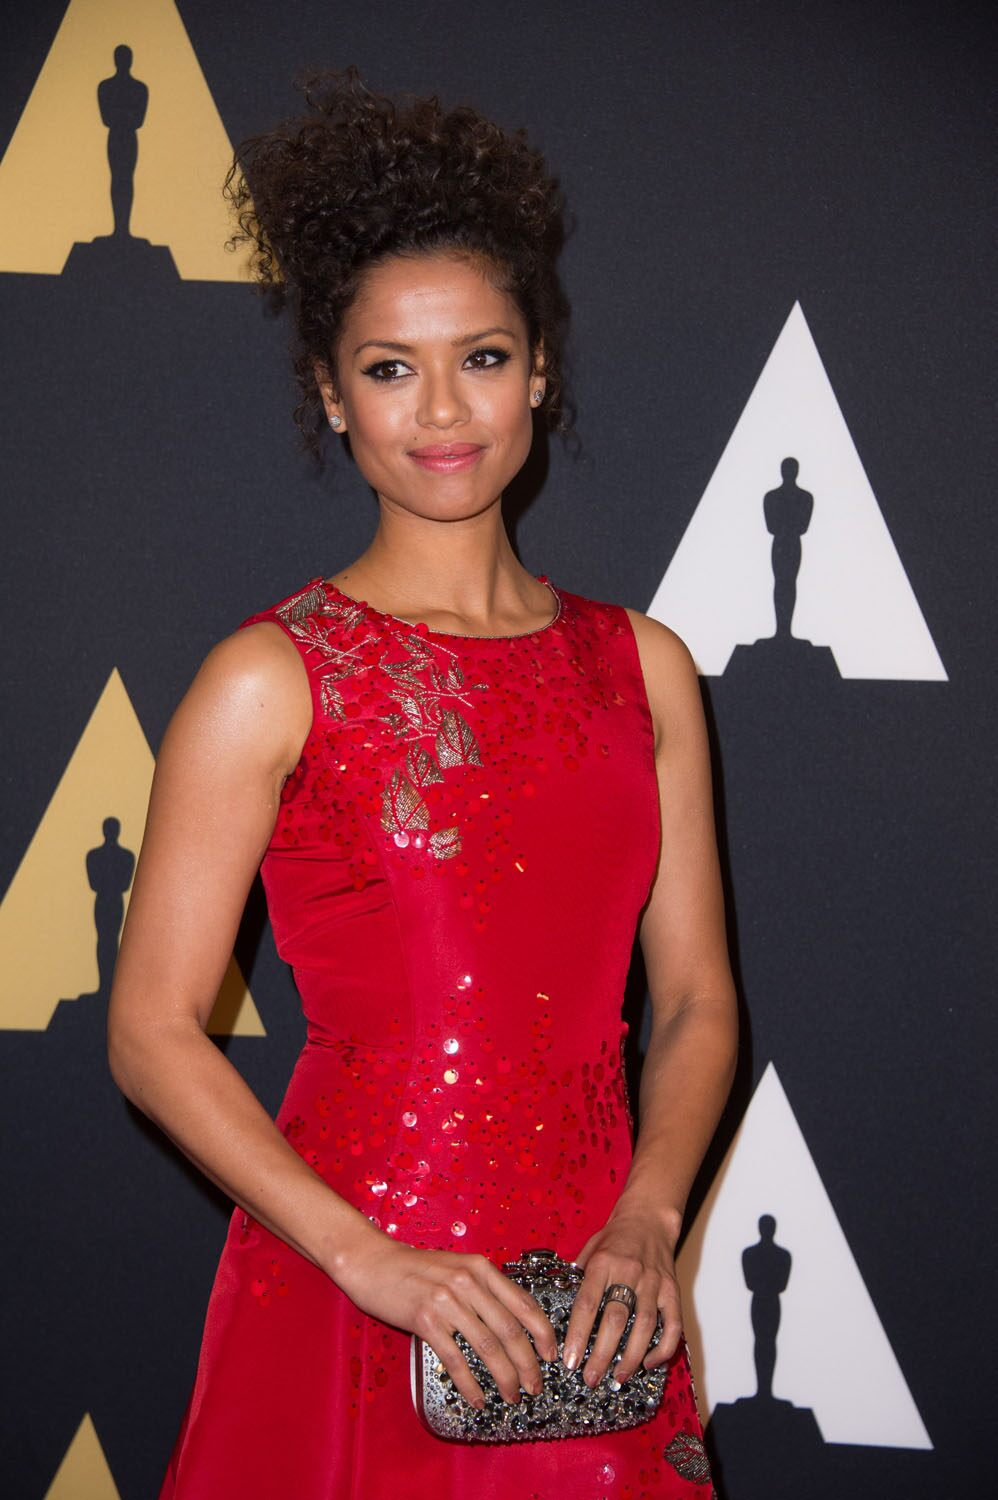 Gugu Mbatha-Raw at the 6th Annual Governors Awards